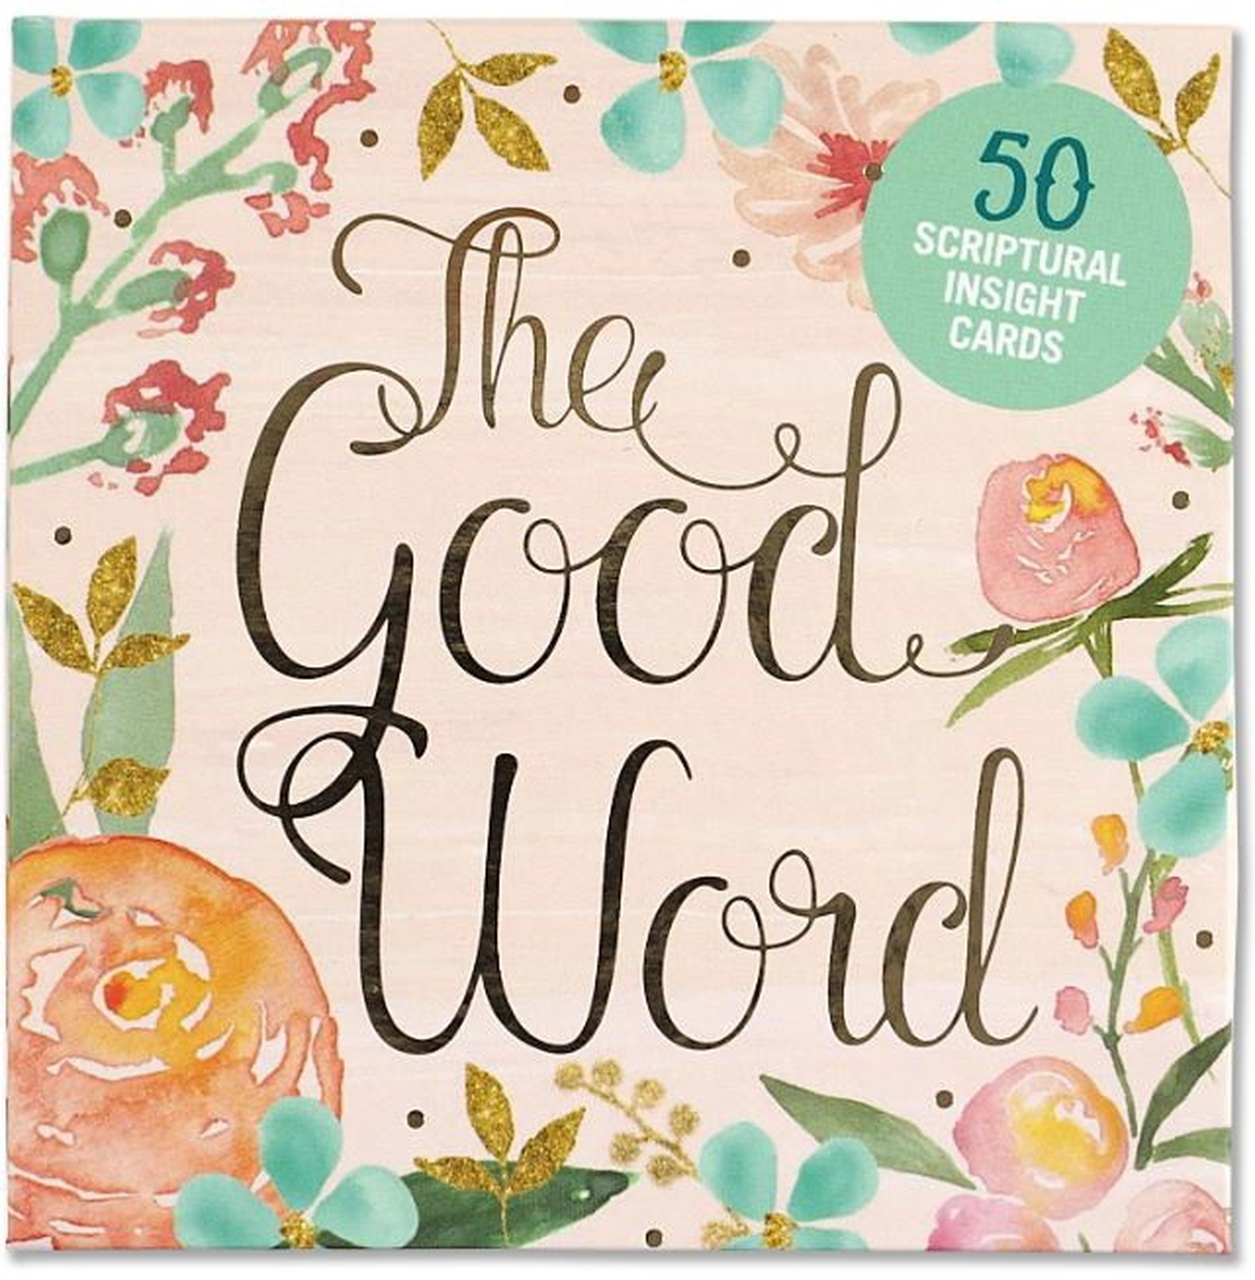 Good Word Insight Cards